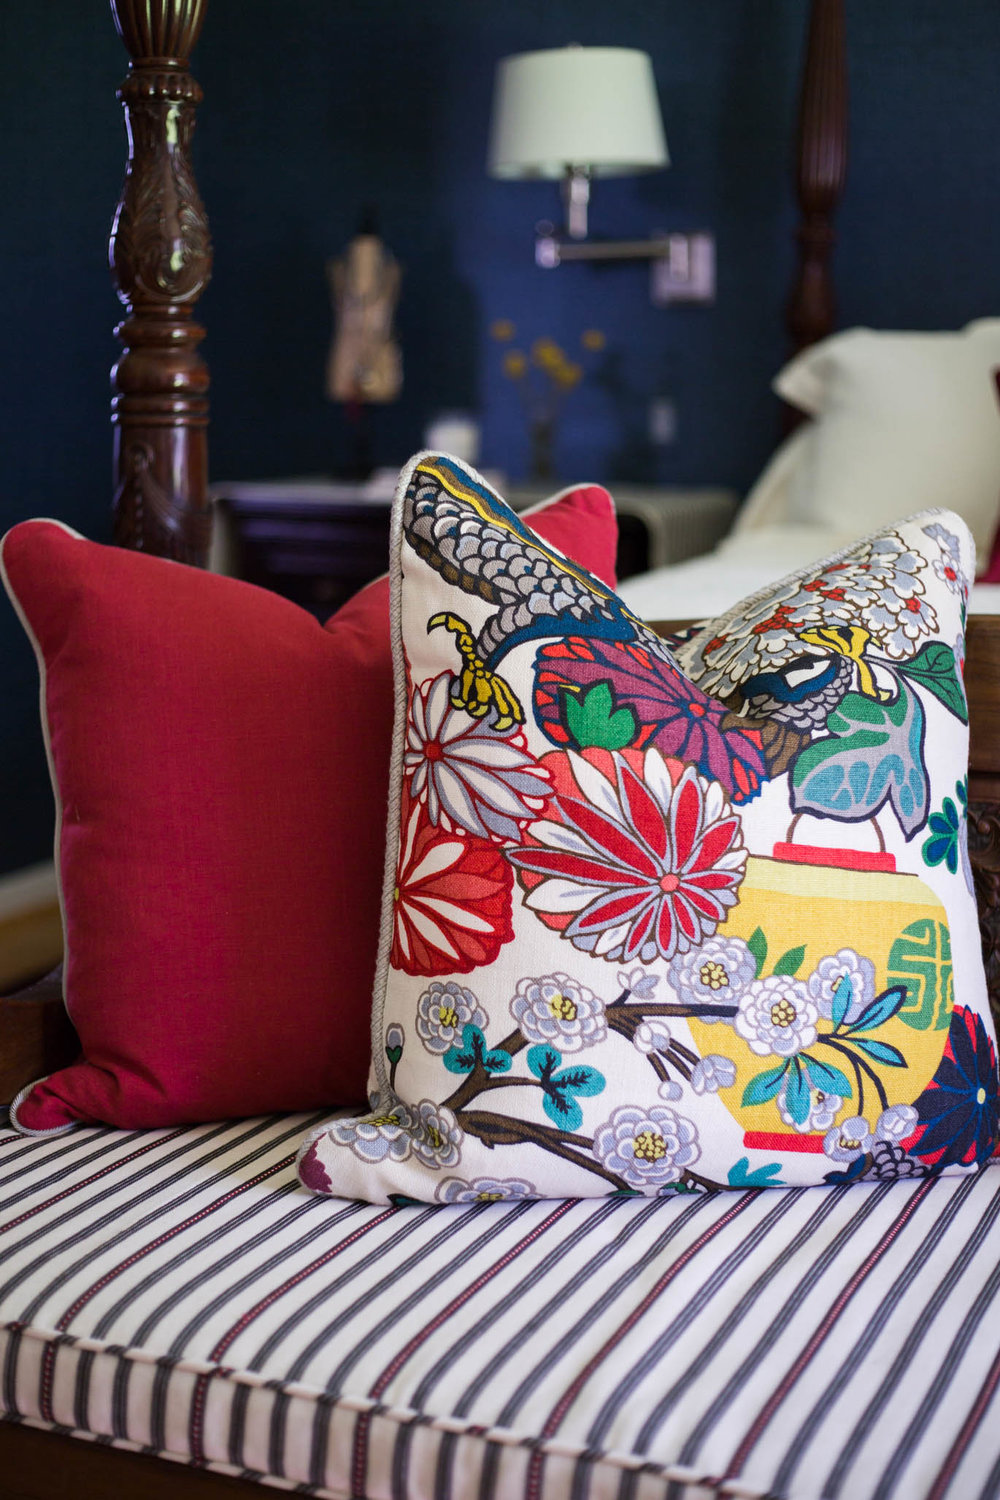 Red, white, and blue pillows with Chiang Mai Dragon fabric in bedroom makeover | Designer- Carla Aston, Photographer- Tori Aston  #grasscloth #fourposterbed #chiangmai #chinoiserie